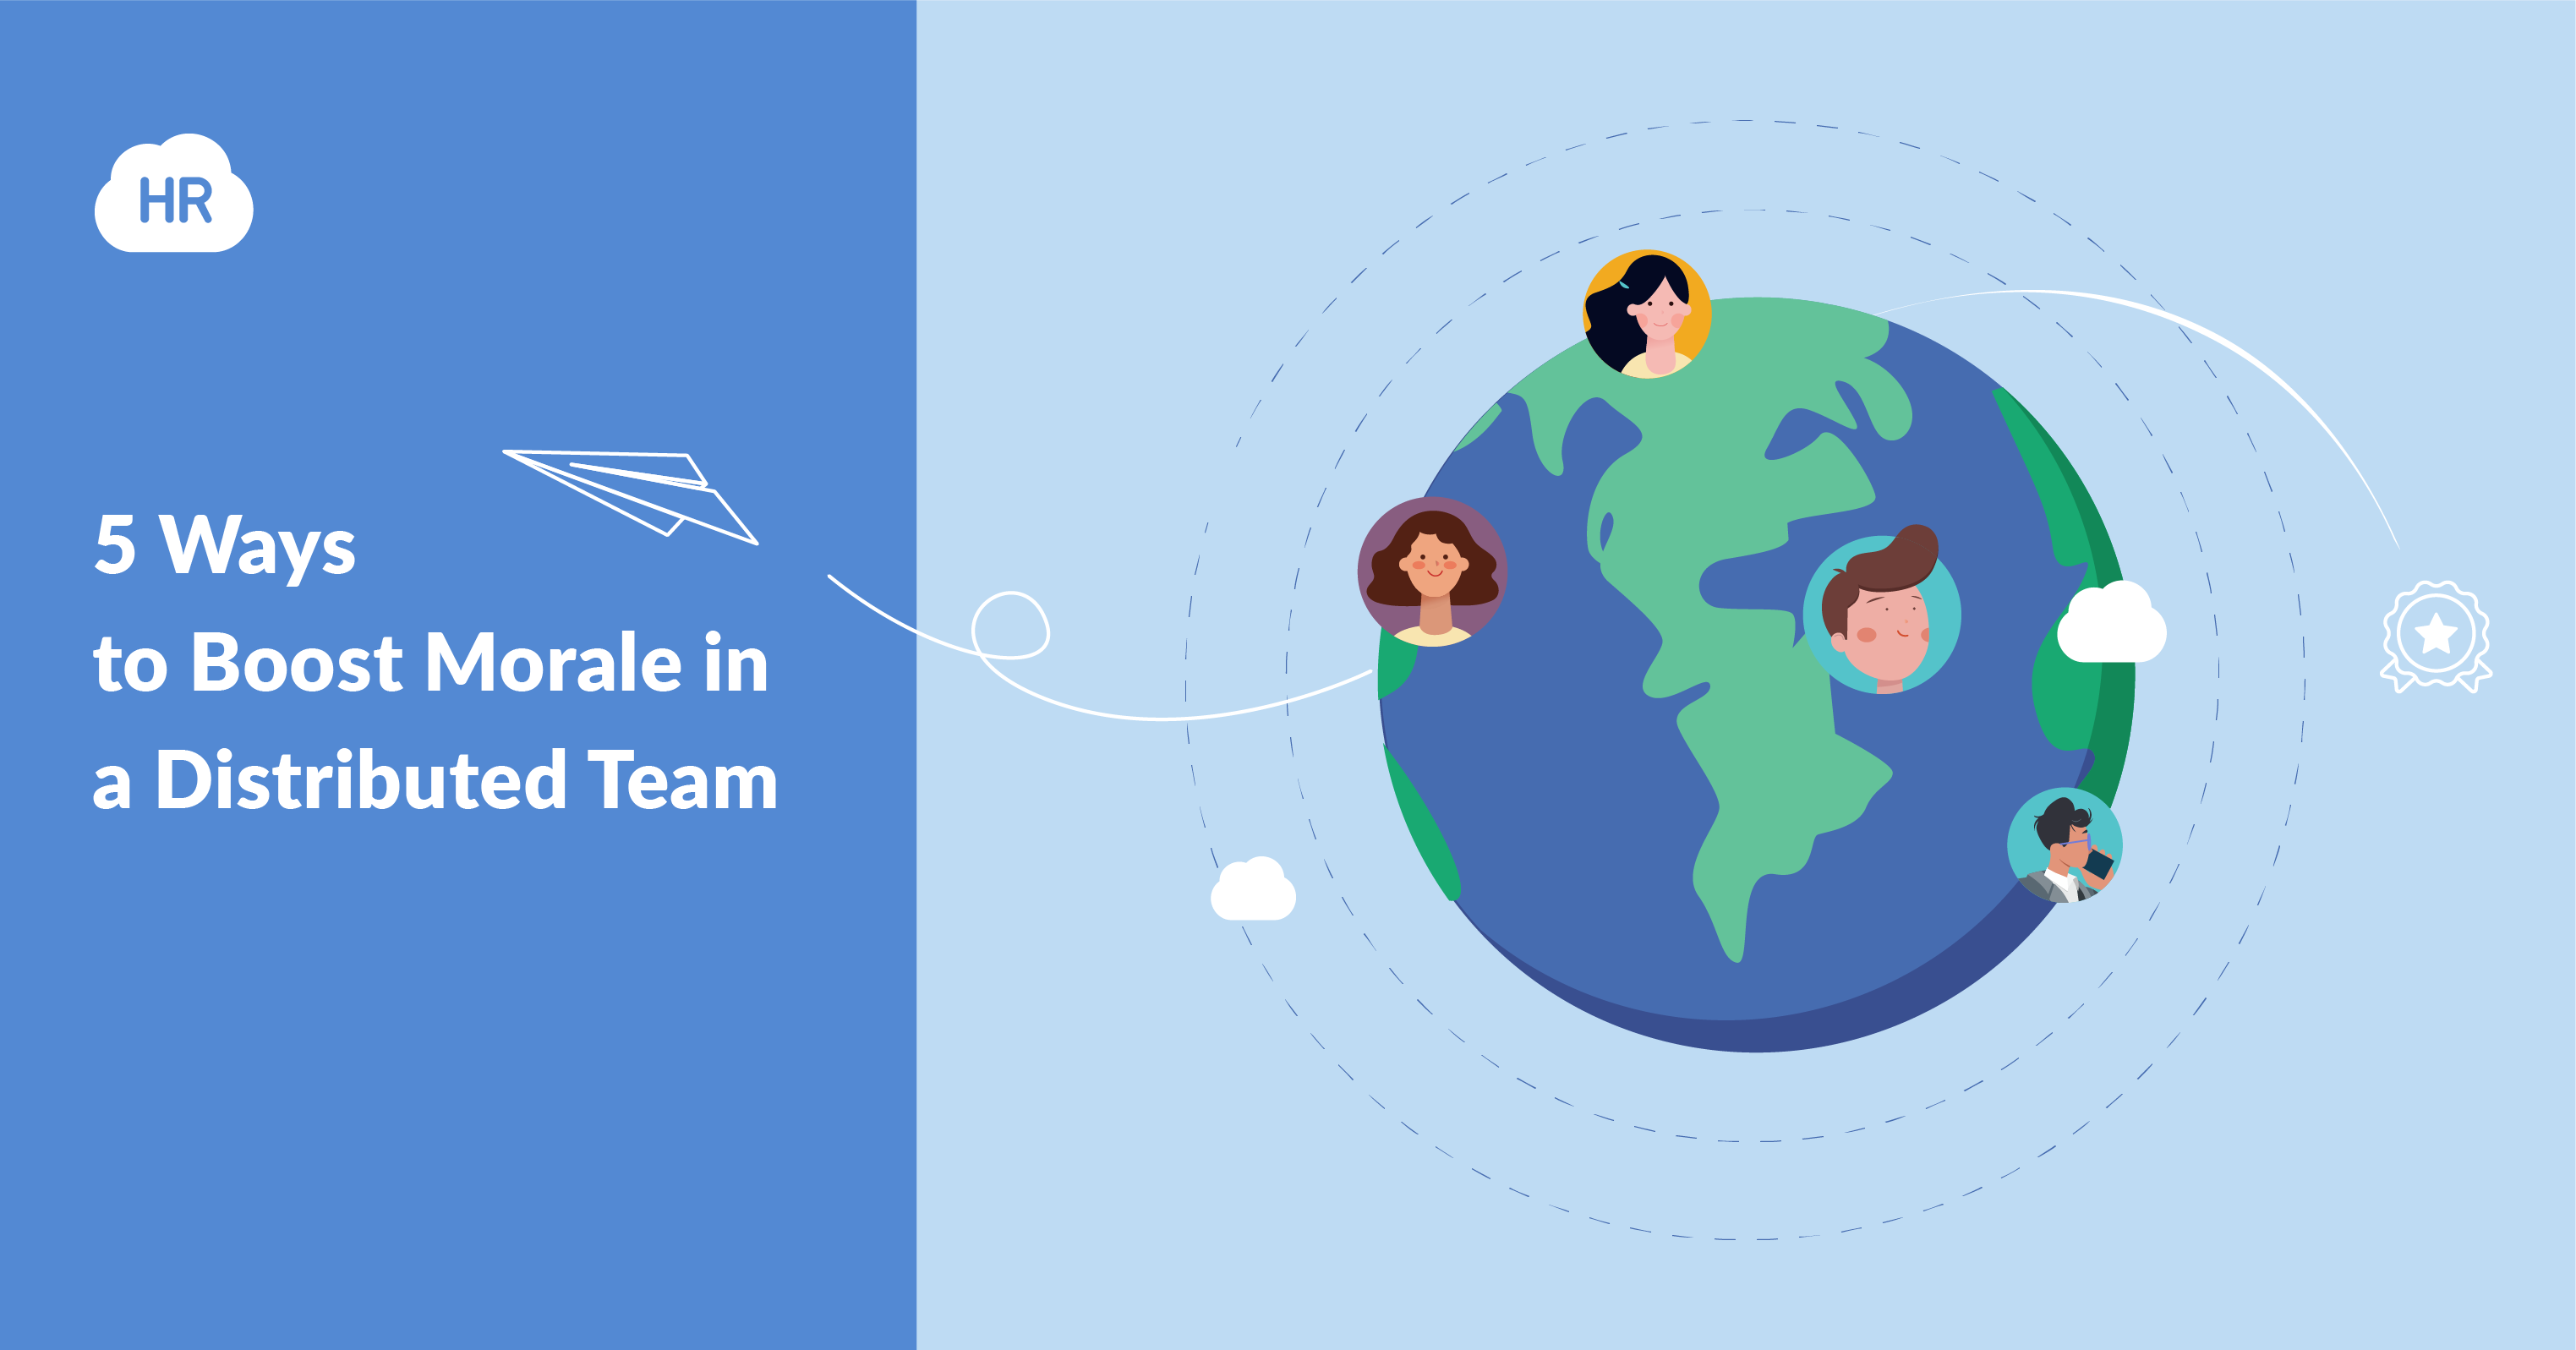 Five Ways to Boost Morale in a Distributed Team